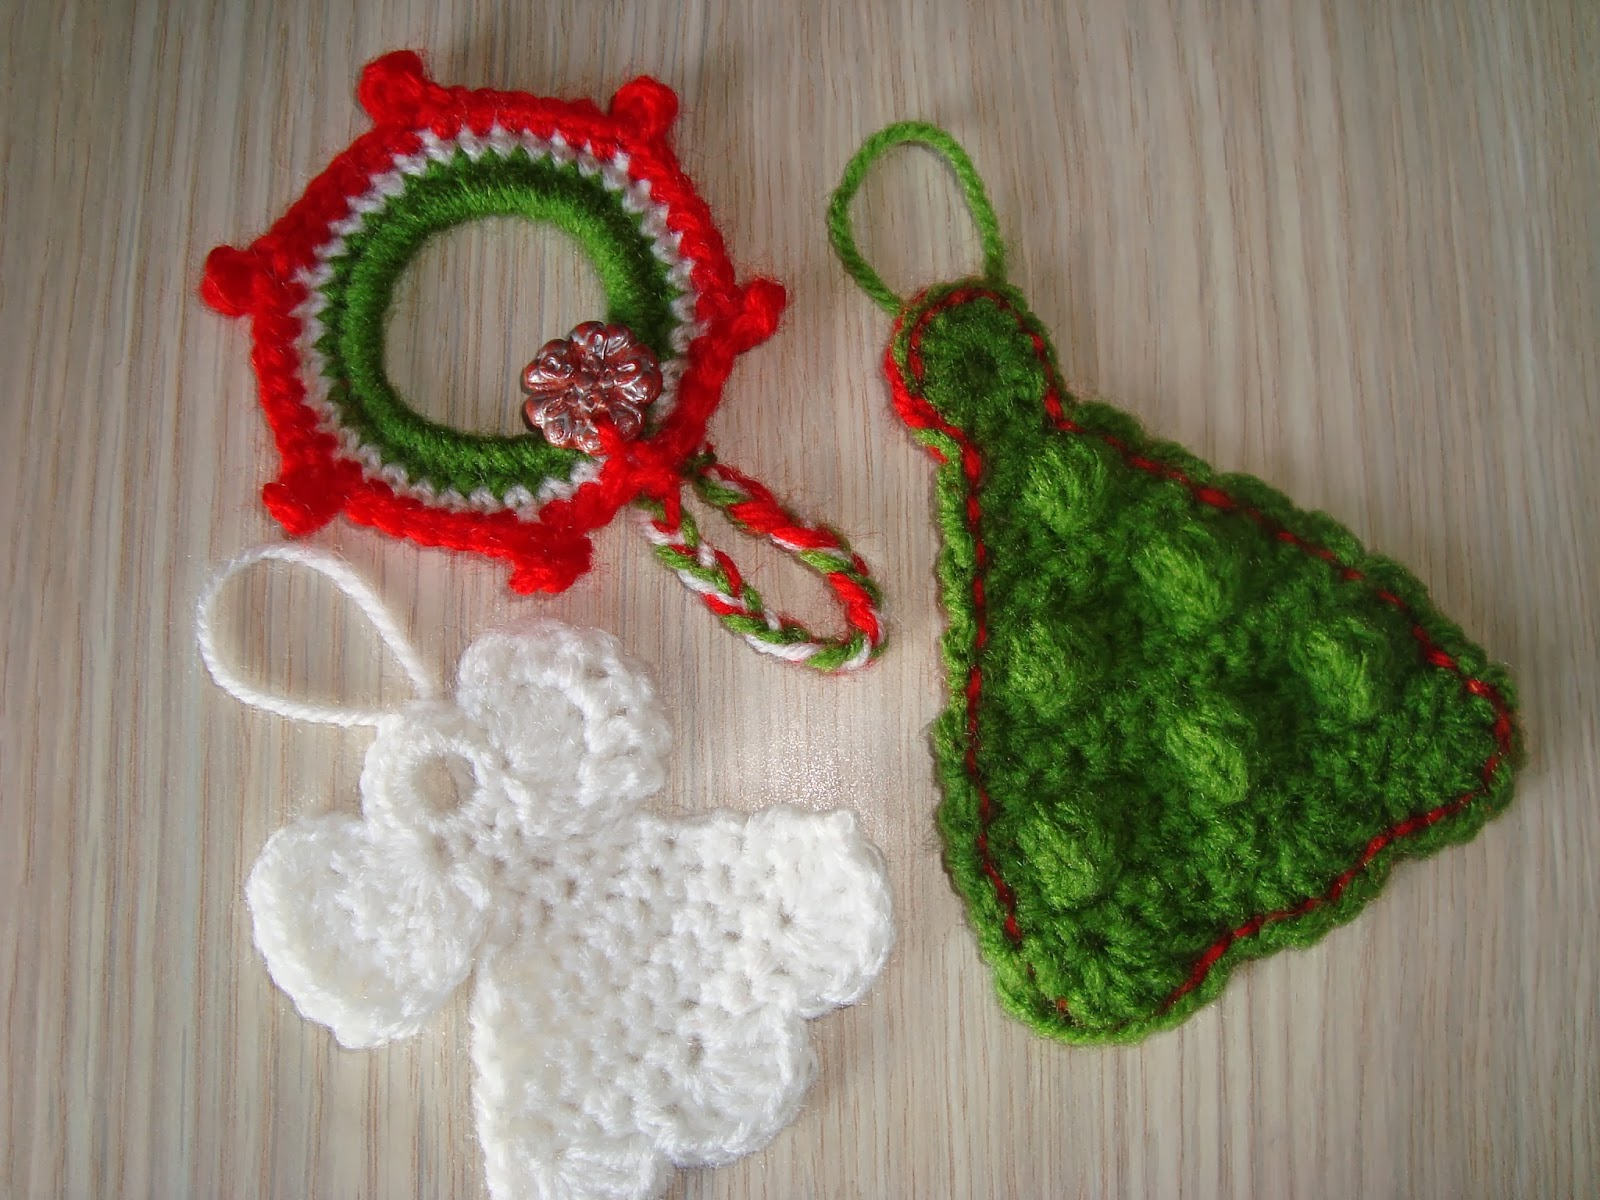 Christmas Crochet Patterns : Christmas Ornaments Crochet Patterns Homealterdecor.top